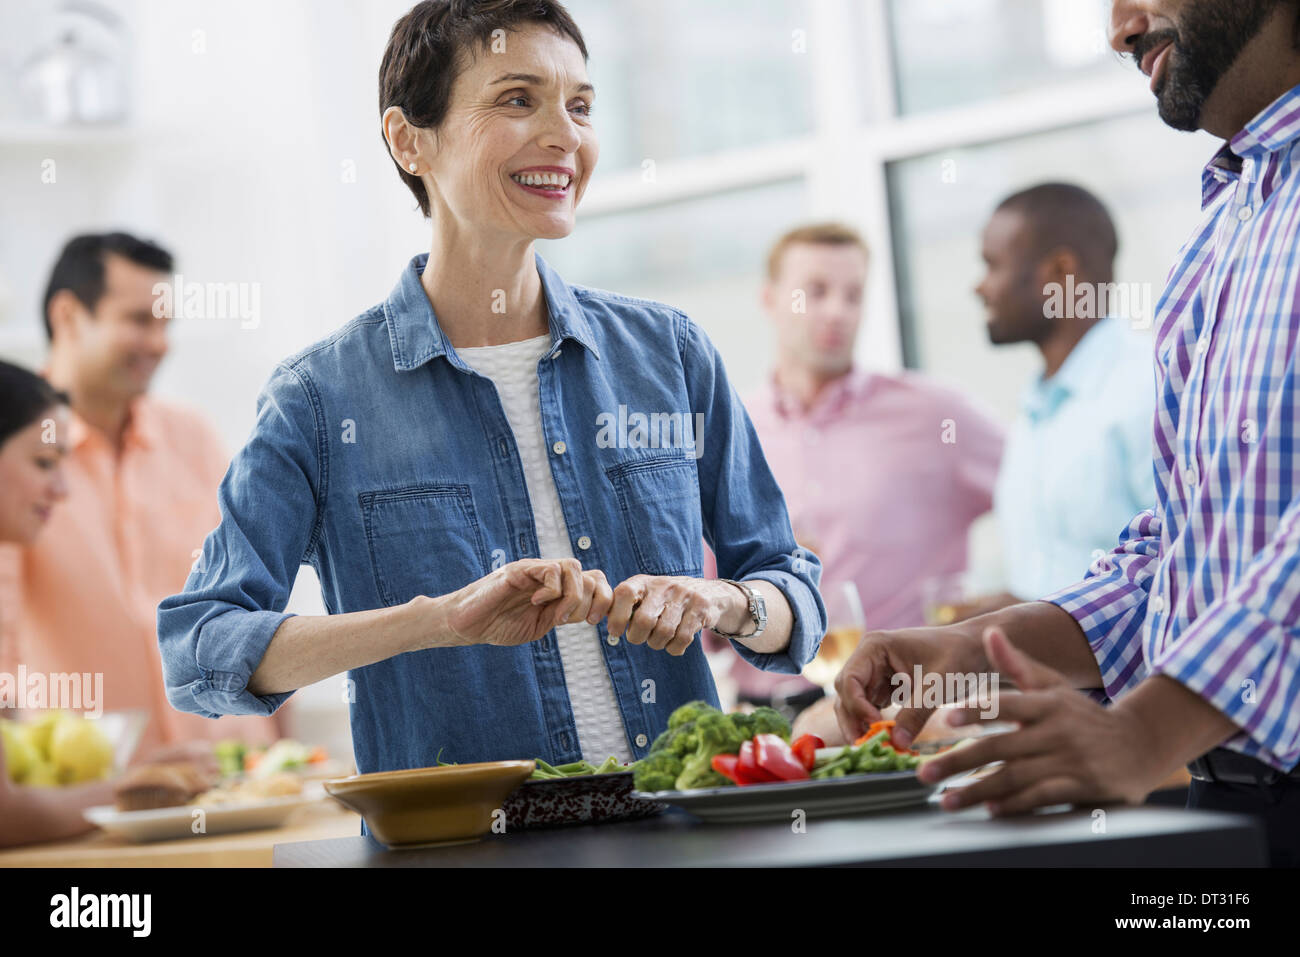 An open plan office A working lunch a salad buffet of mixed ages and ethnicities meeting together Stock Photo